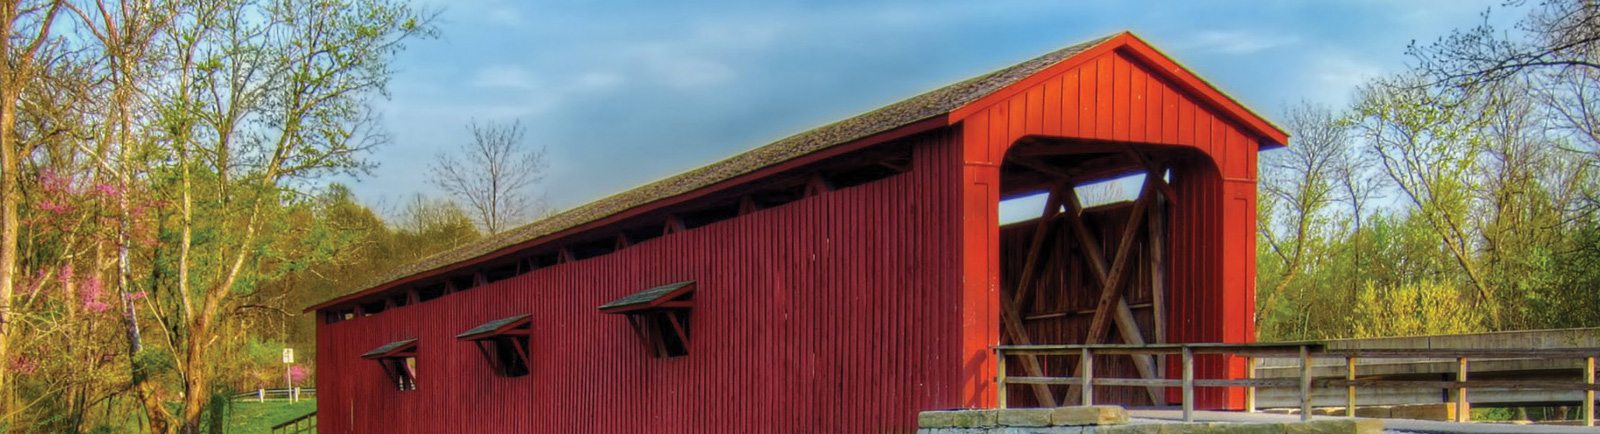 Covered Bridge in Owen County, Indiana